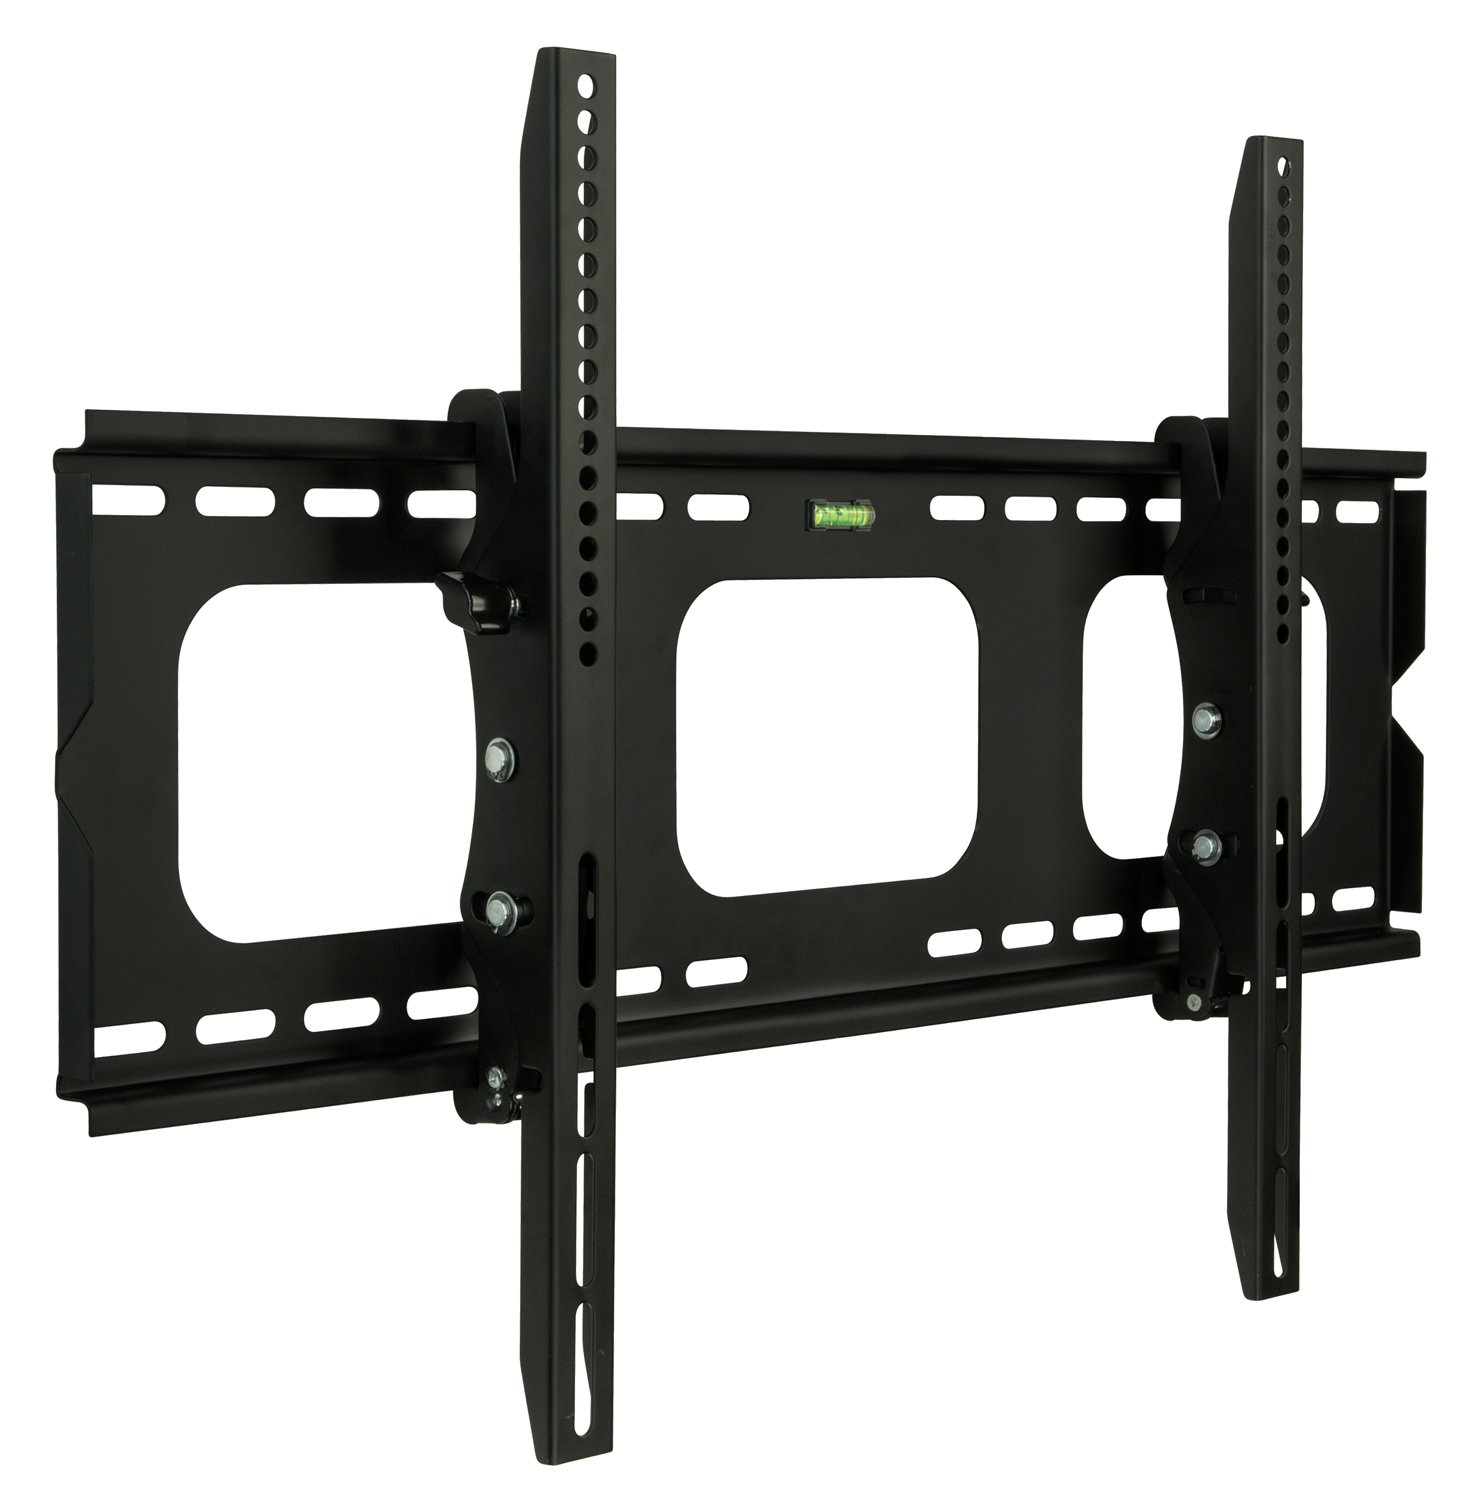 Mount It Lcd Plasma Tv Universal Wall Mount 32 Inch 60 Inch Tilt